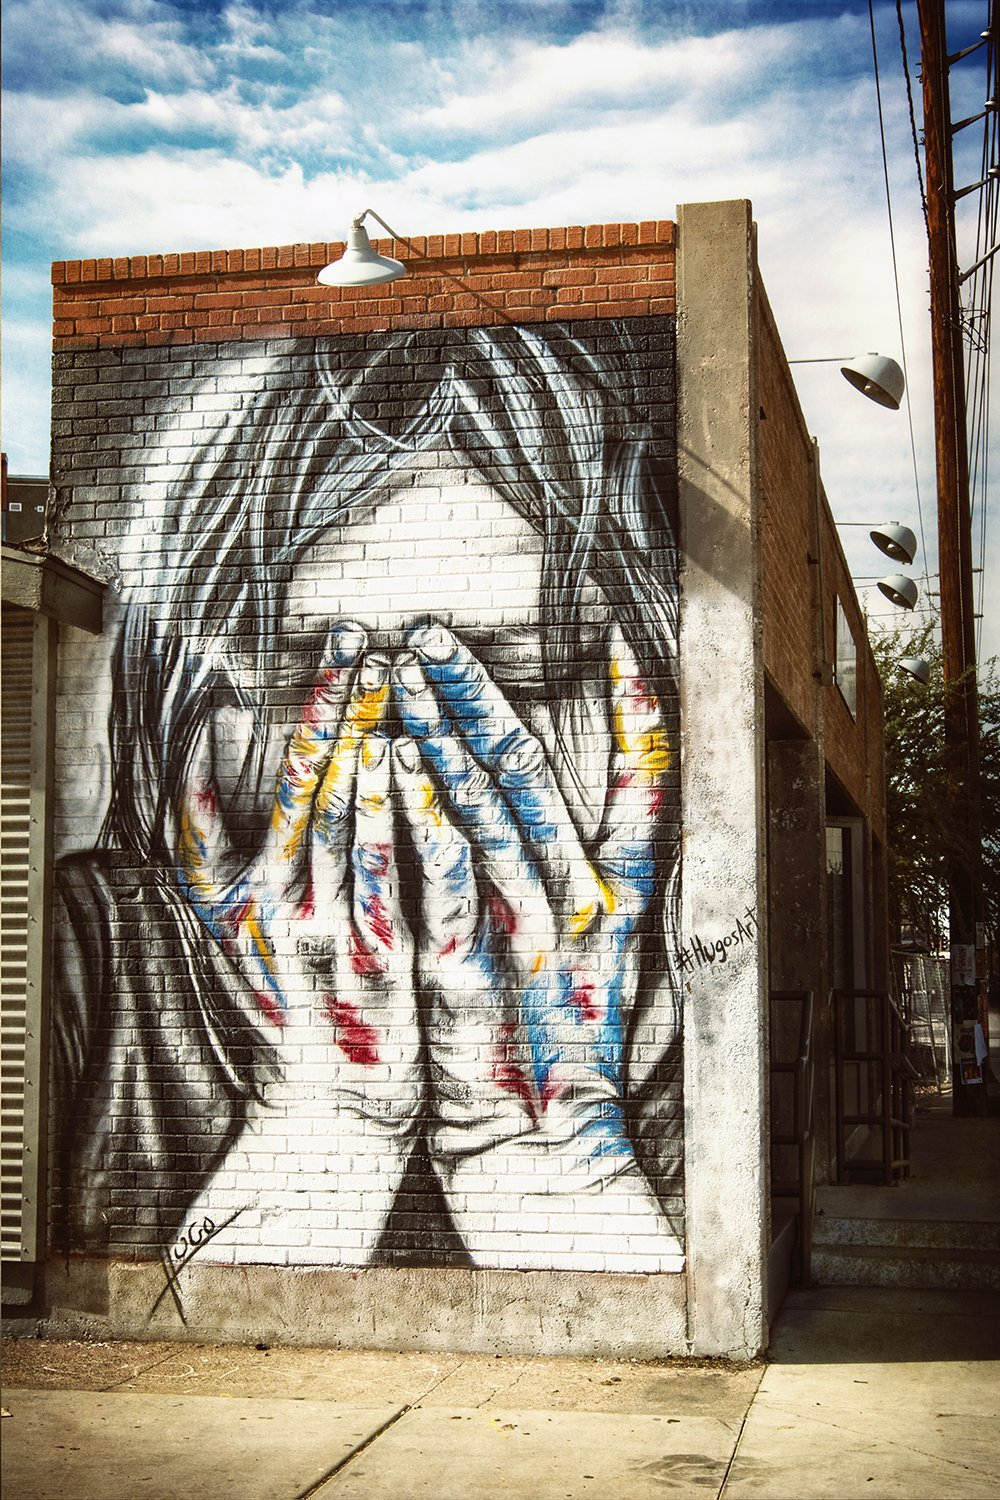 graffiti, girl, crying, street art, urban art, streets, downtown